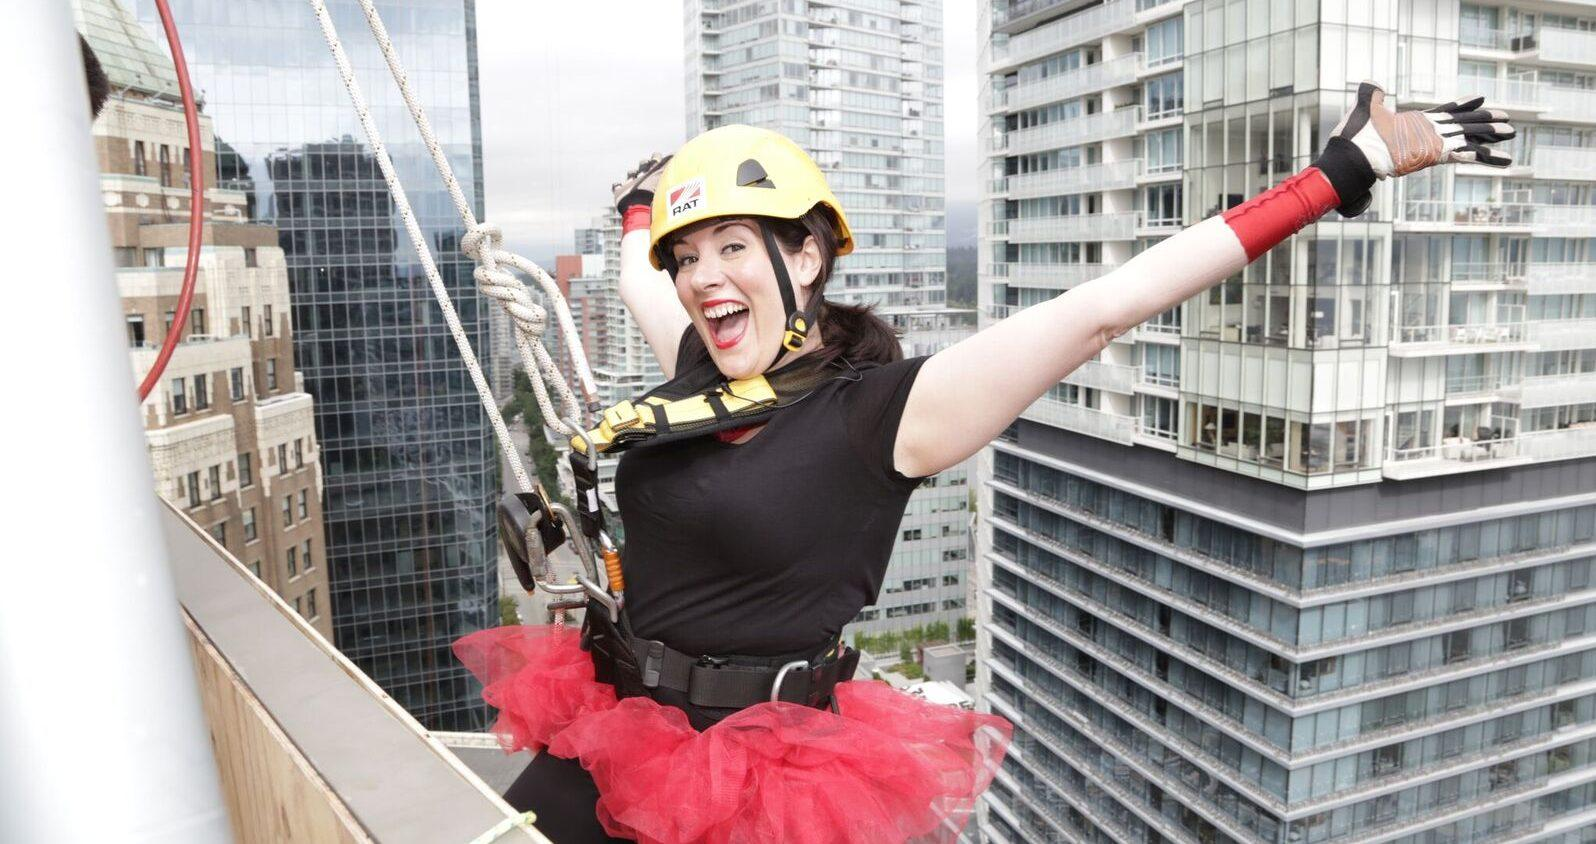 Enter for your chance to rappel down a skyscraper for free and more (CONTEST)